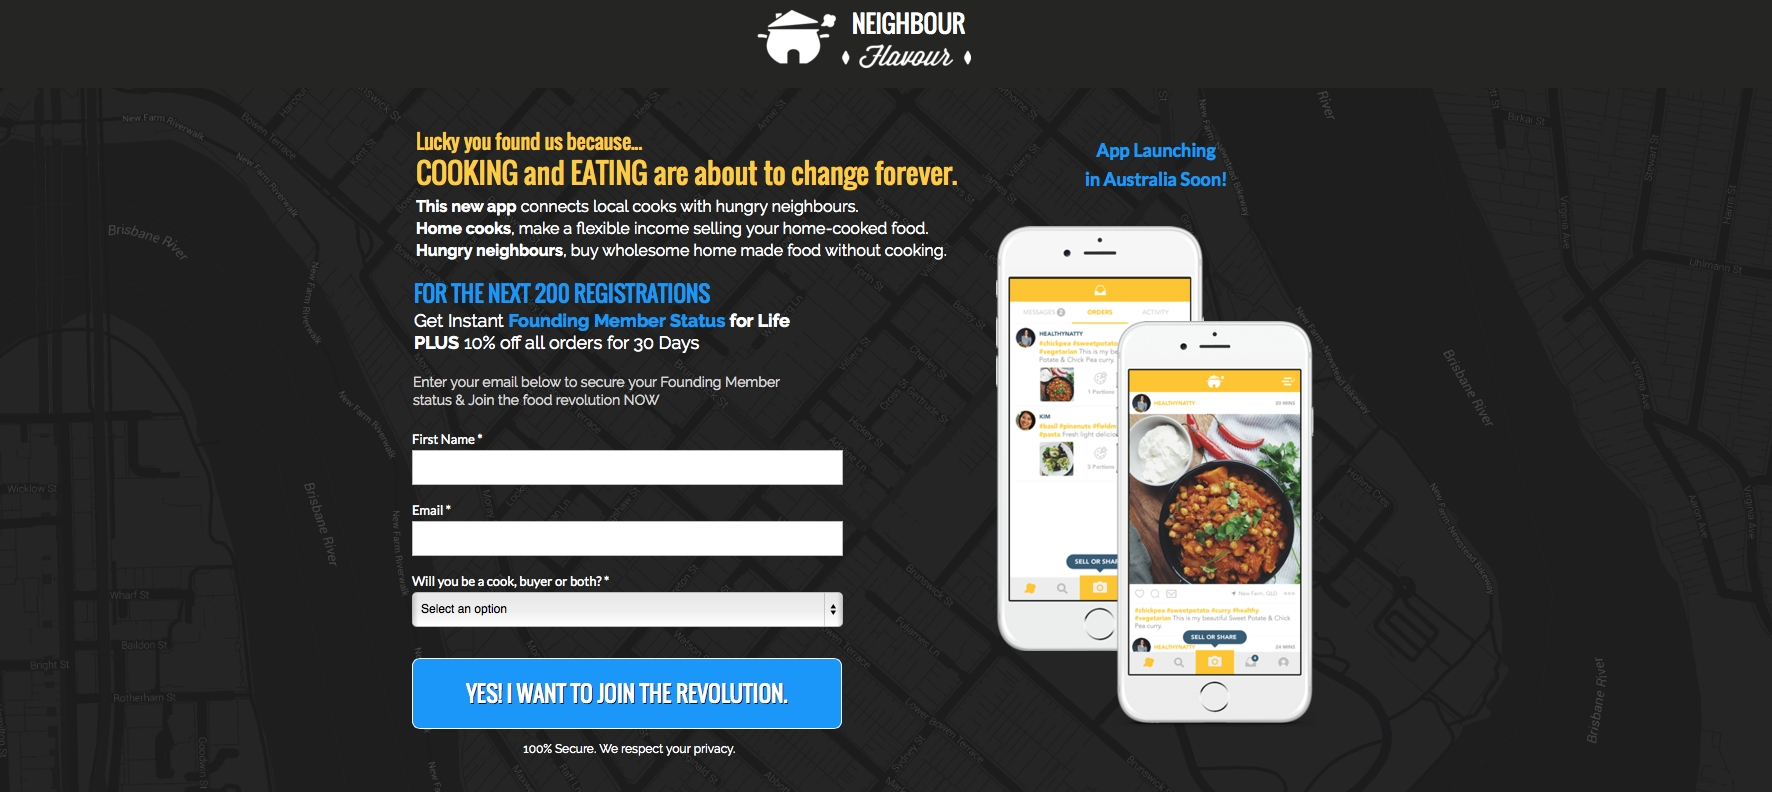 10 Trendy How To Sell Your App Idea how to use facebook ads to ensure mobile app success 2021